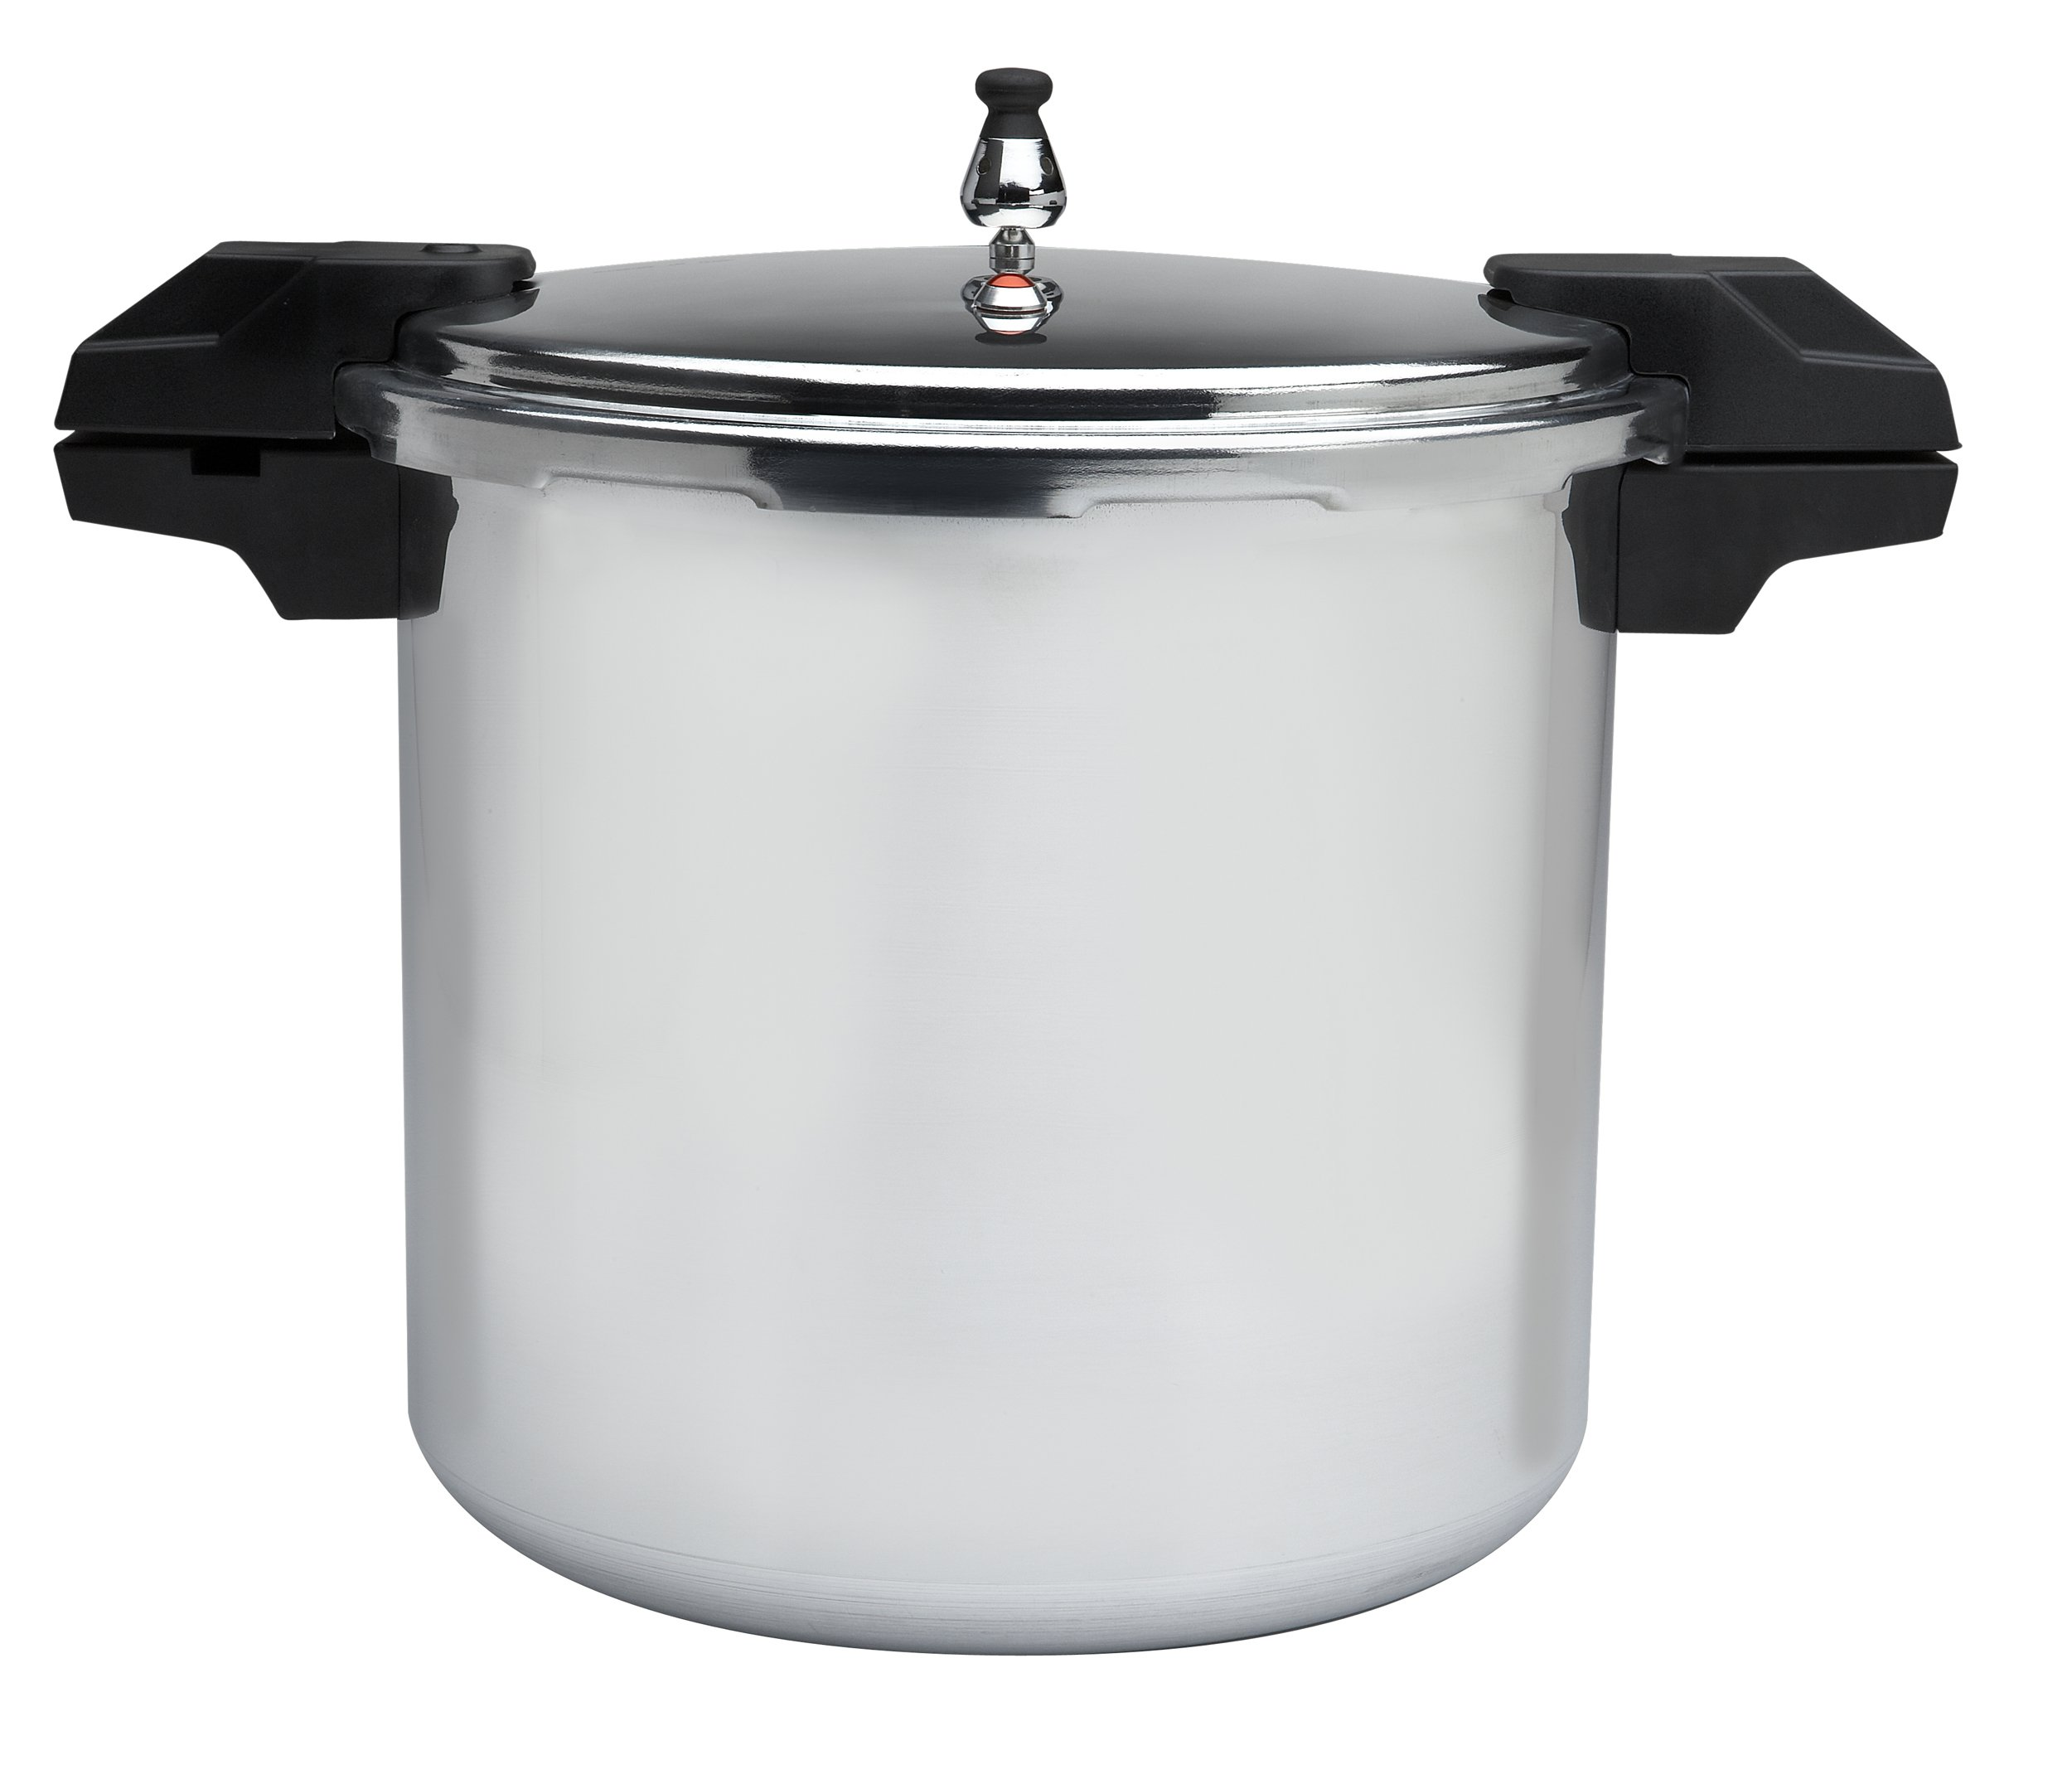 Mirro 92122A Polished Aluminum 5/10 / 15-PSI Pressure Cooker/Canner Cookware, 22-Quart, Silver by Mirro (Image #1)